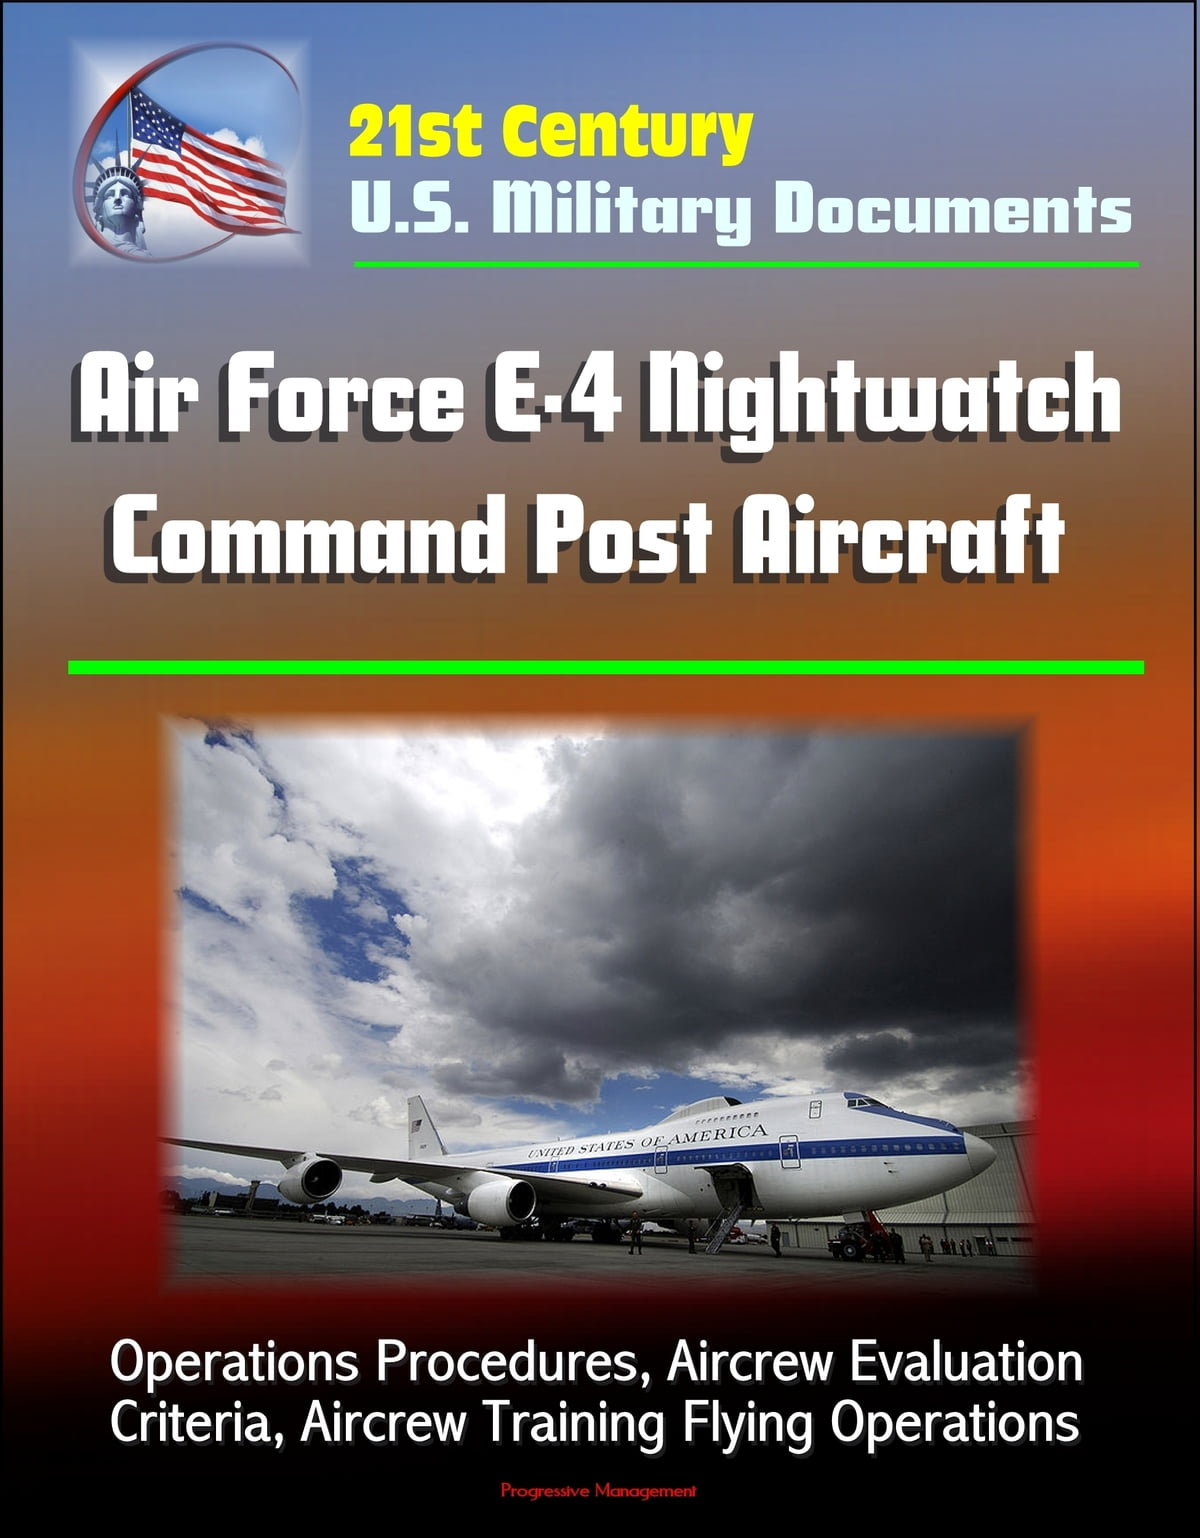 21st Century U S  Military Documents: Air Force E-4 Nightwatch Command Post  Aircraft - Operations Procedures, Aircrew Evaluation Criteria, Aircrew